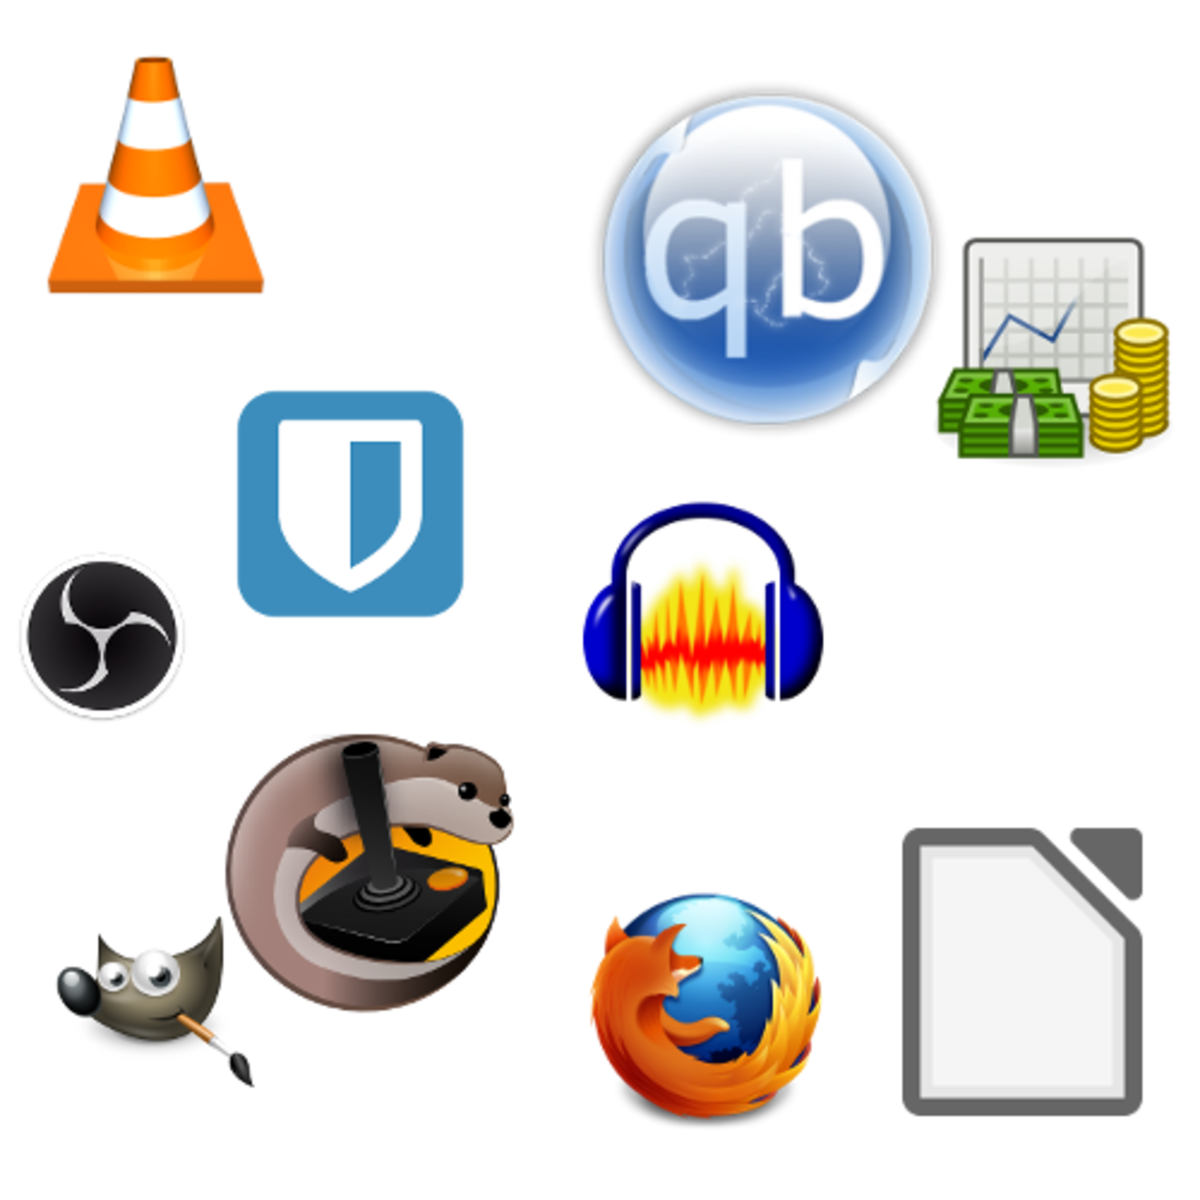 The icons of common open-source software.